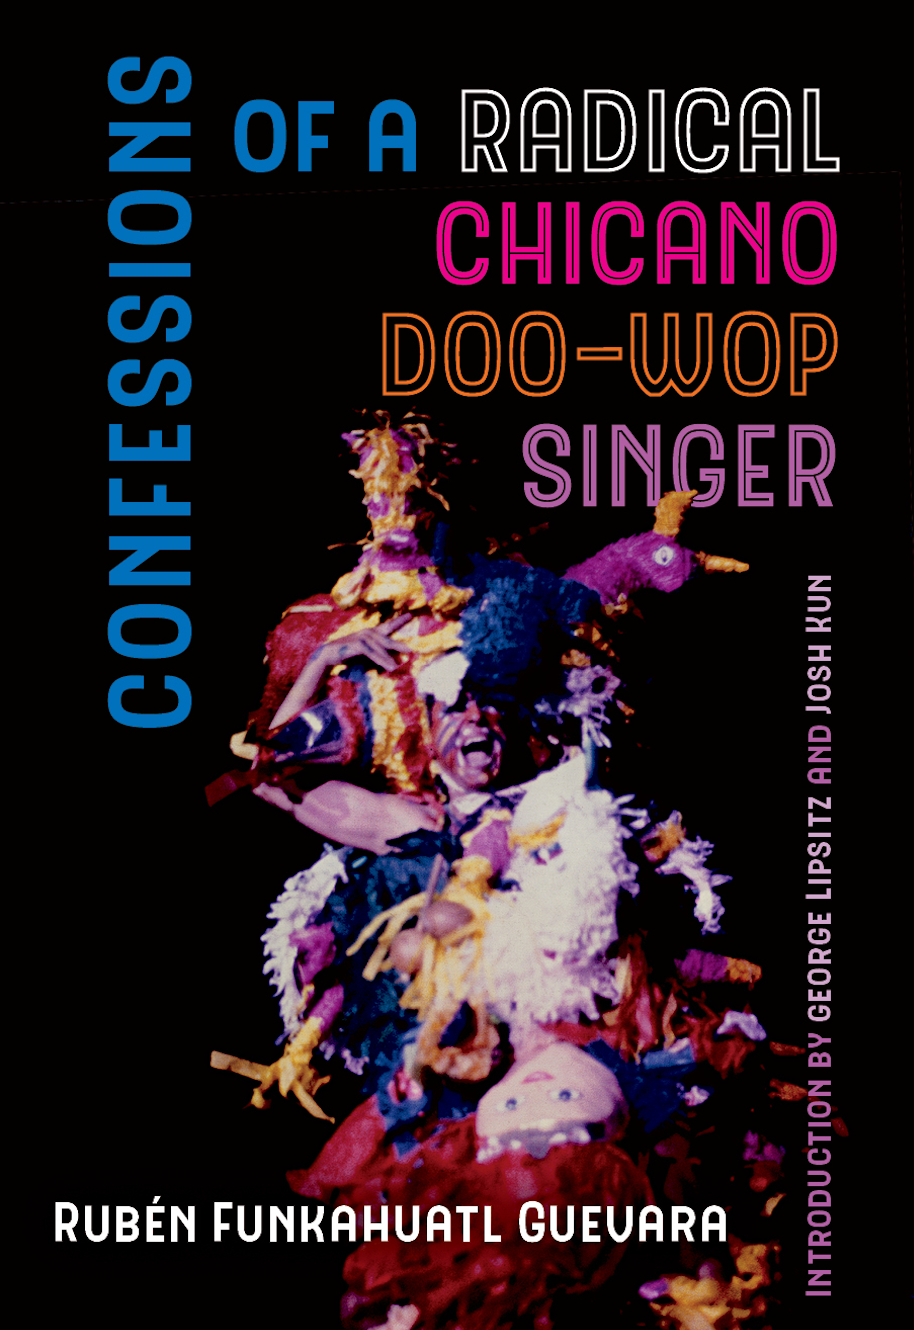 Confessions of a Radical Chicano Doo-Wop Singer by Rubén Funkahuatl Guevara